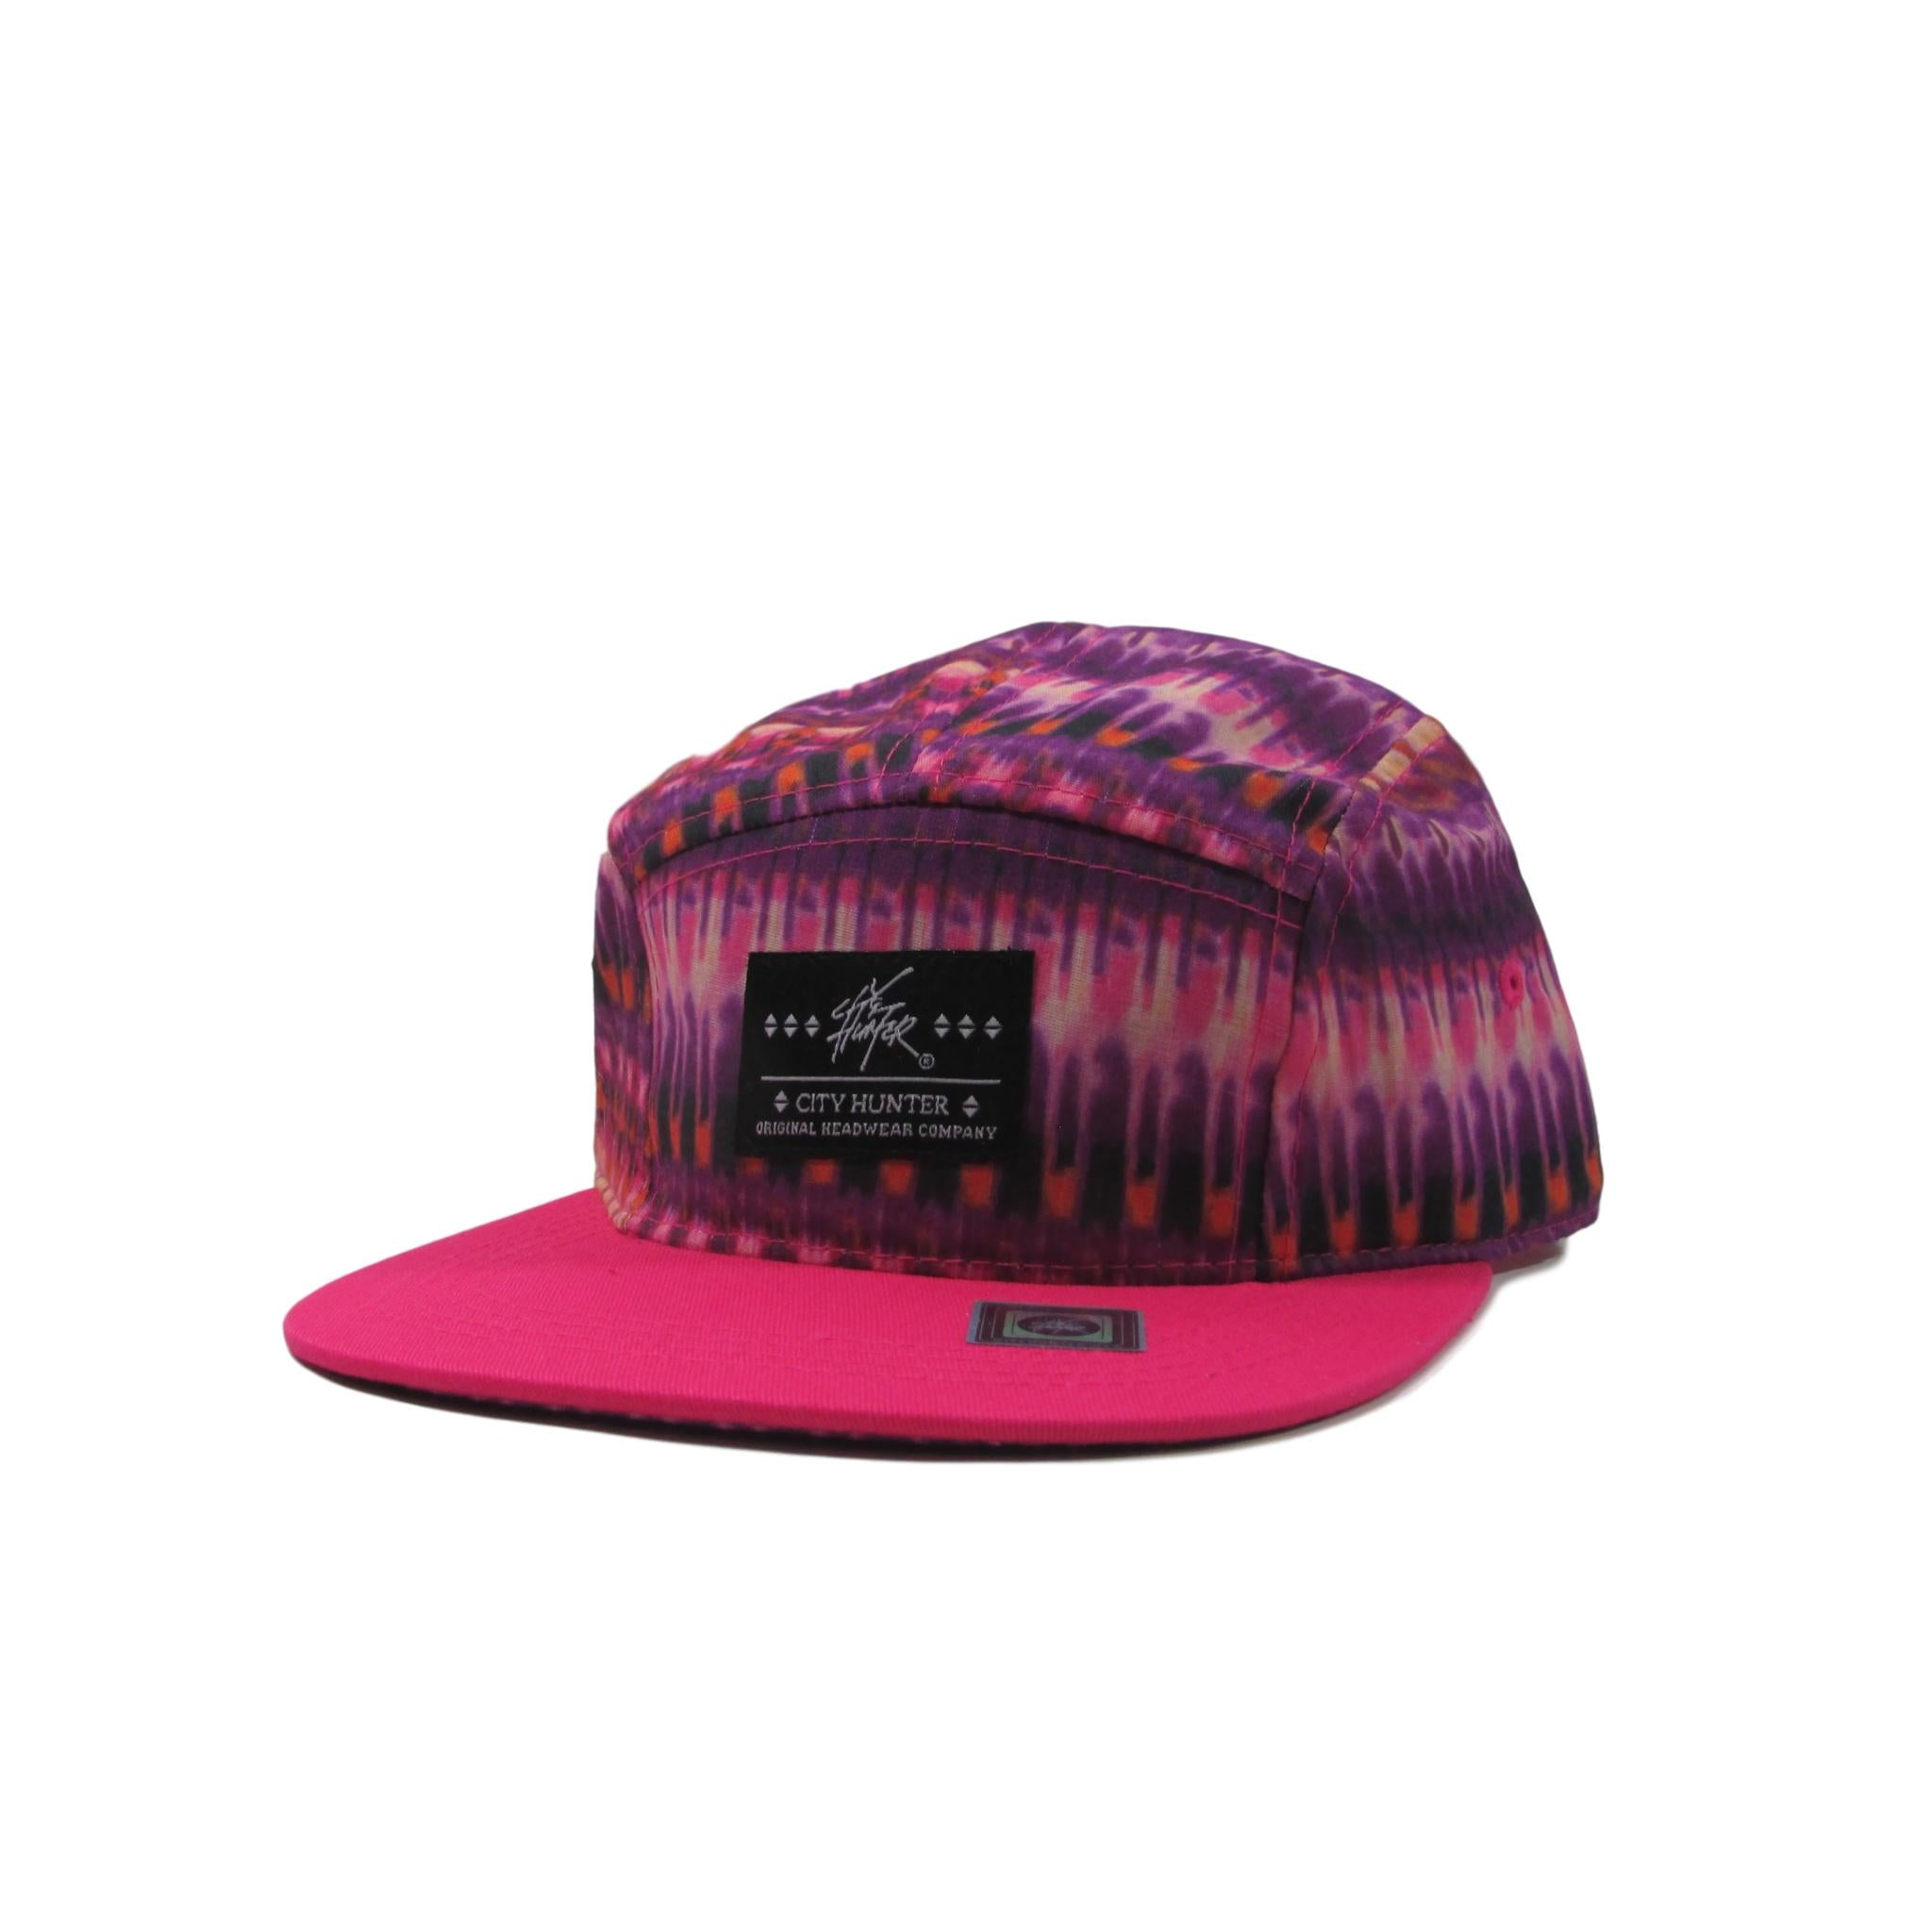 City Hunter Volcanic Ash Magenta 5 Panel Leather Strapback Hat